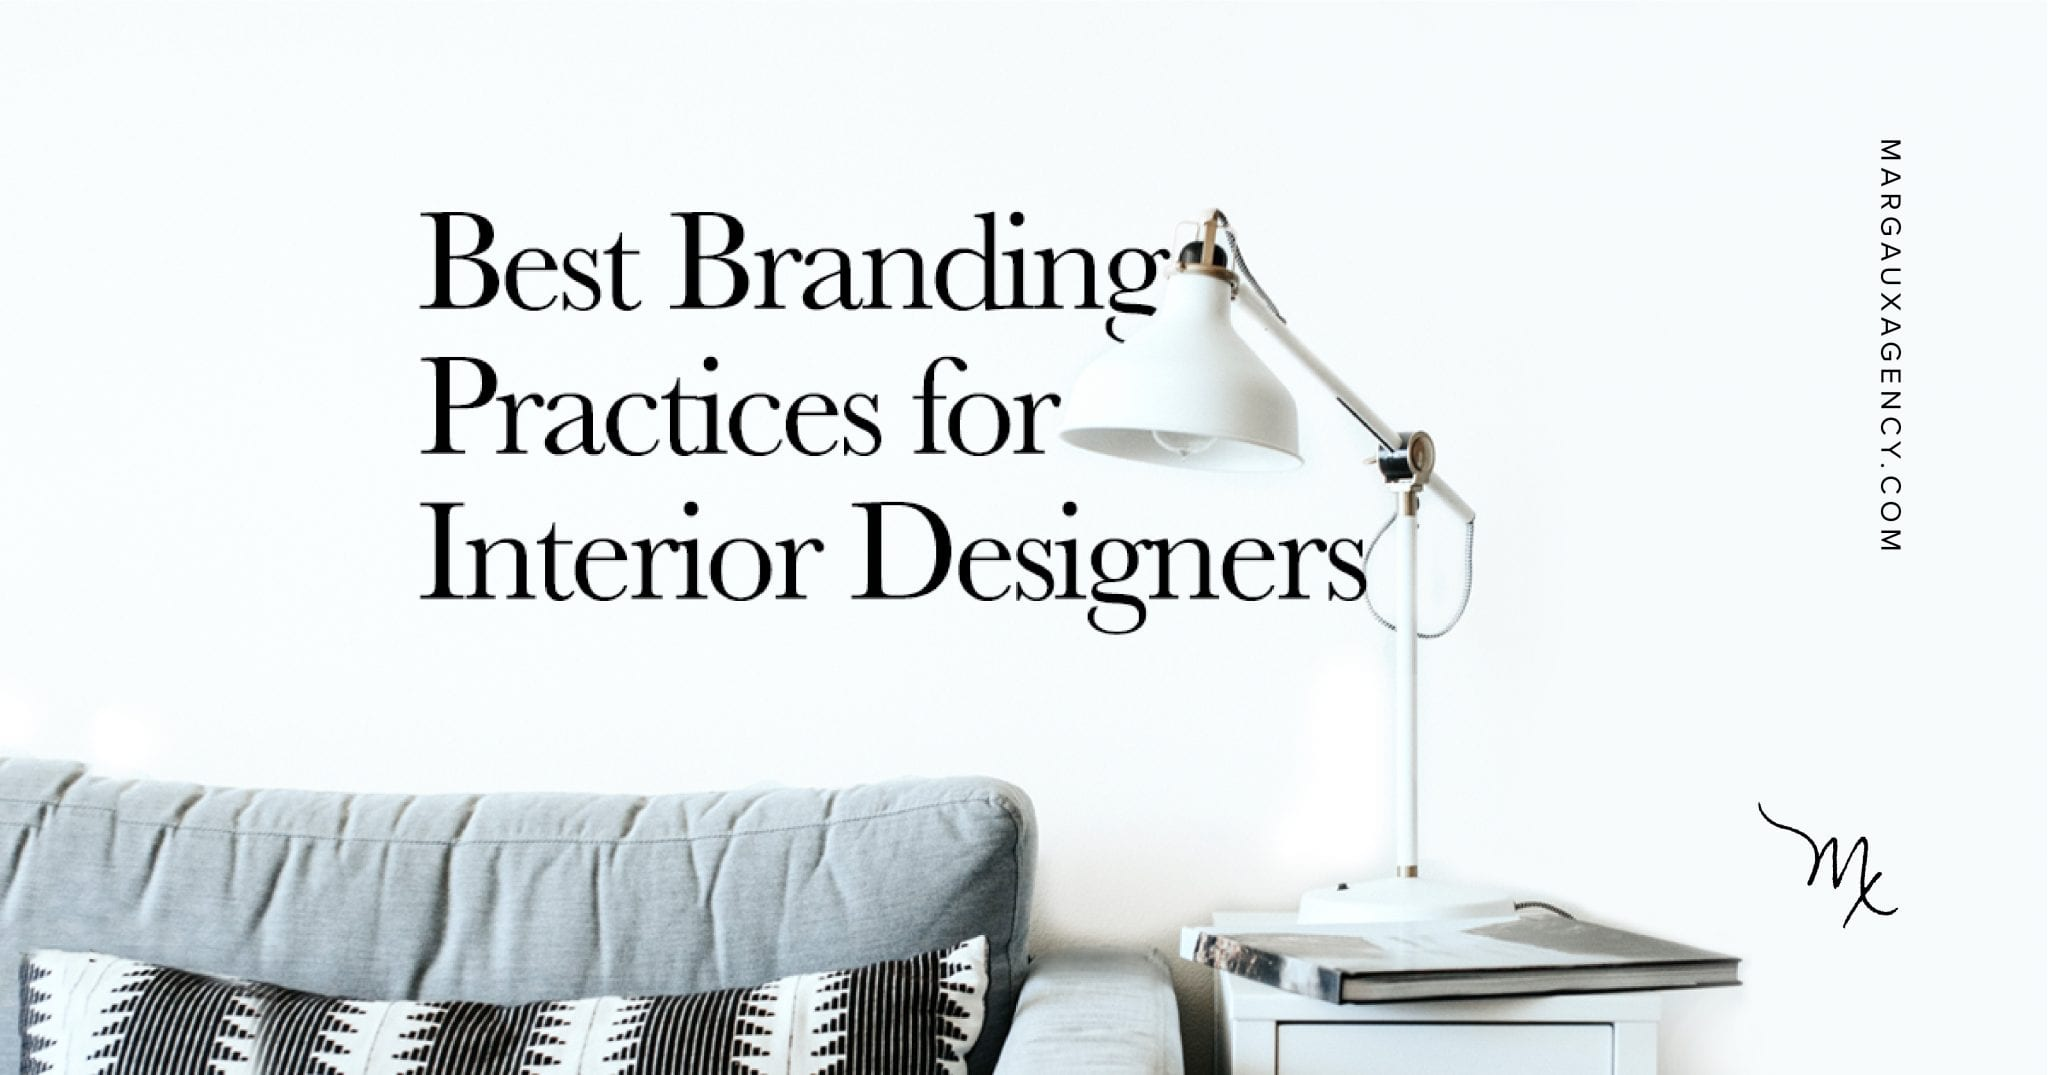 Insights on the Best Branding Practices for Interior Designers